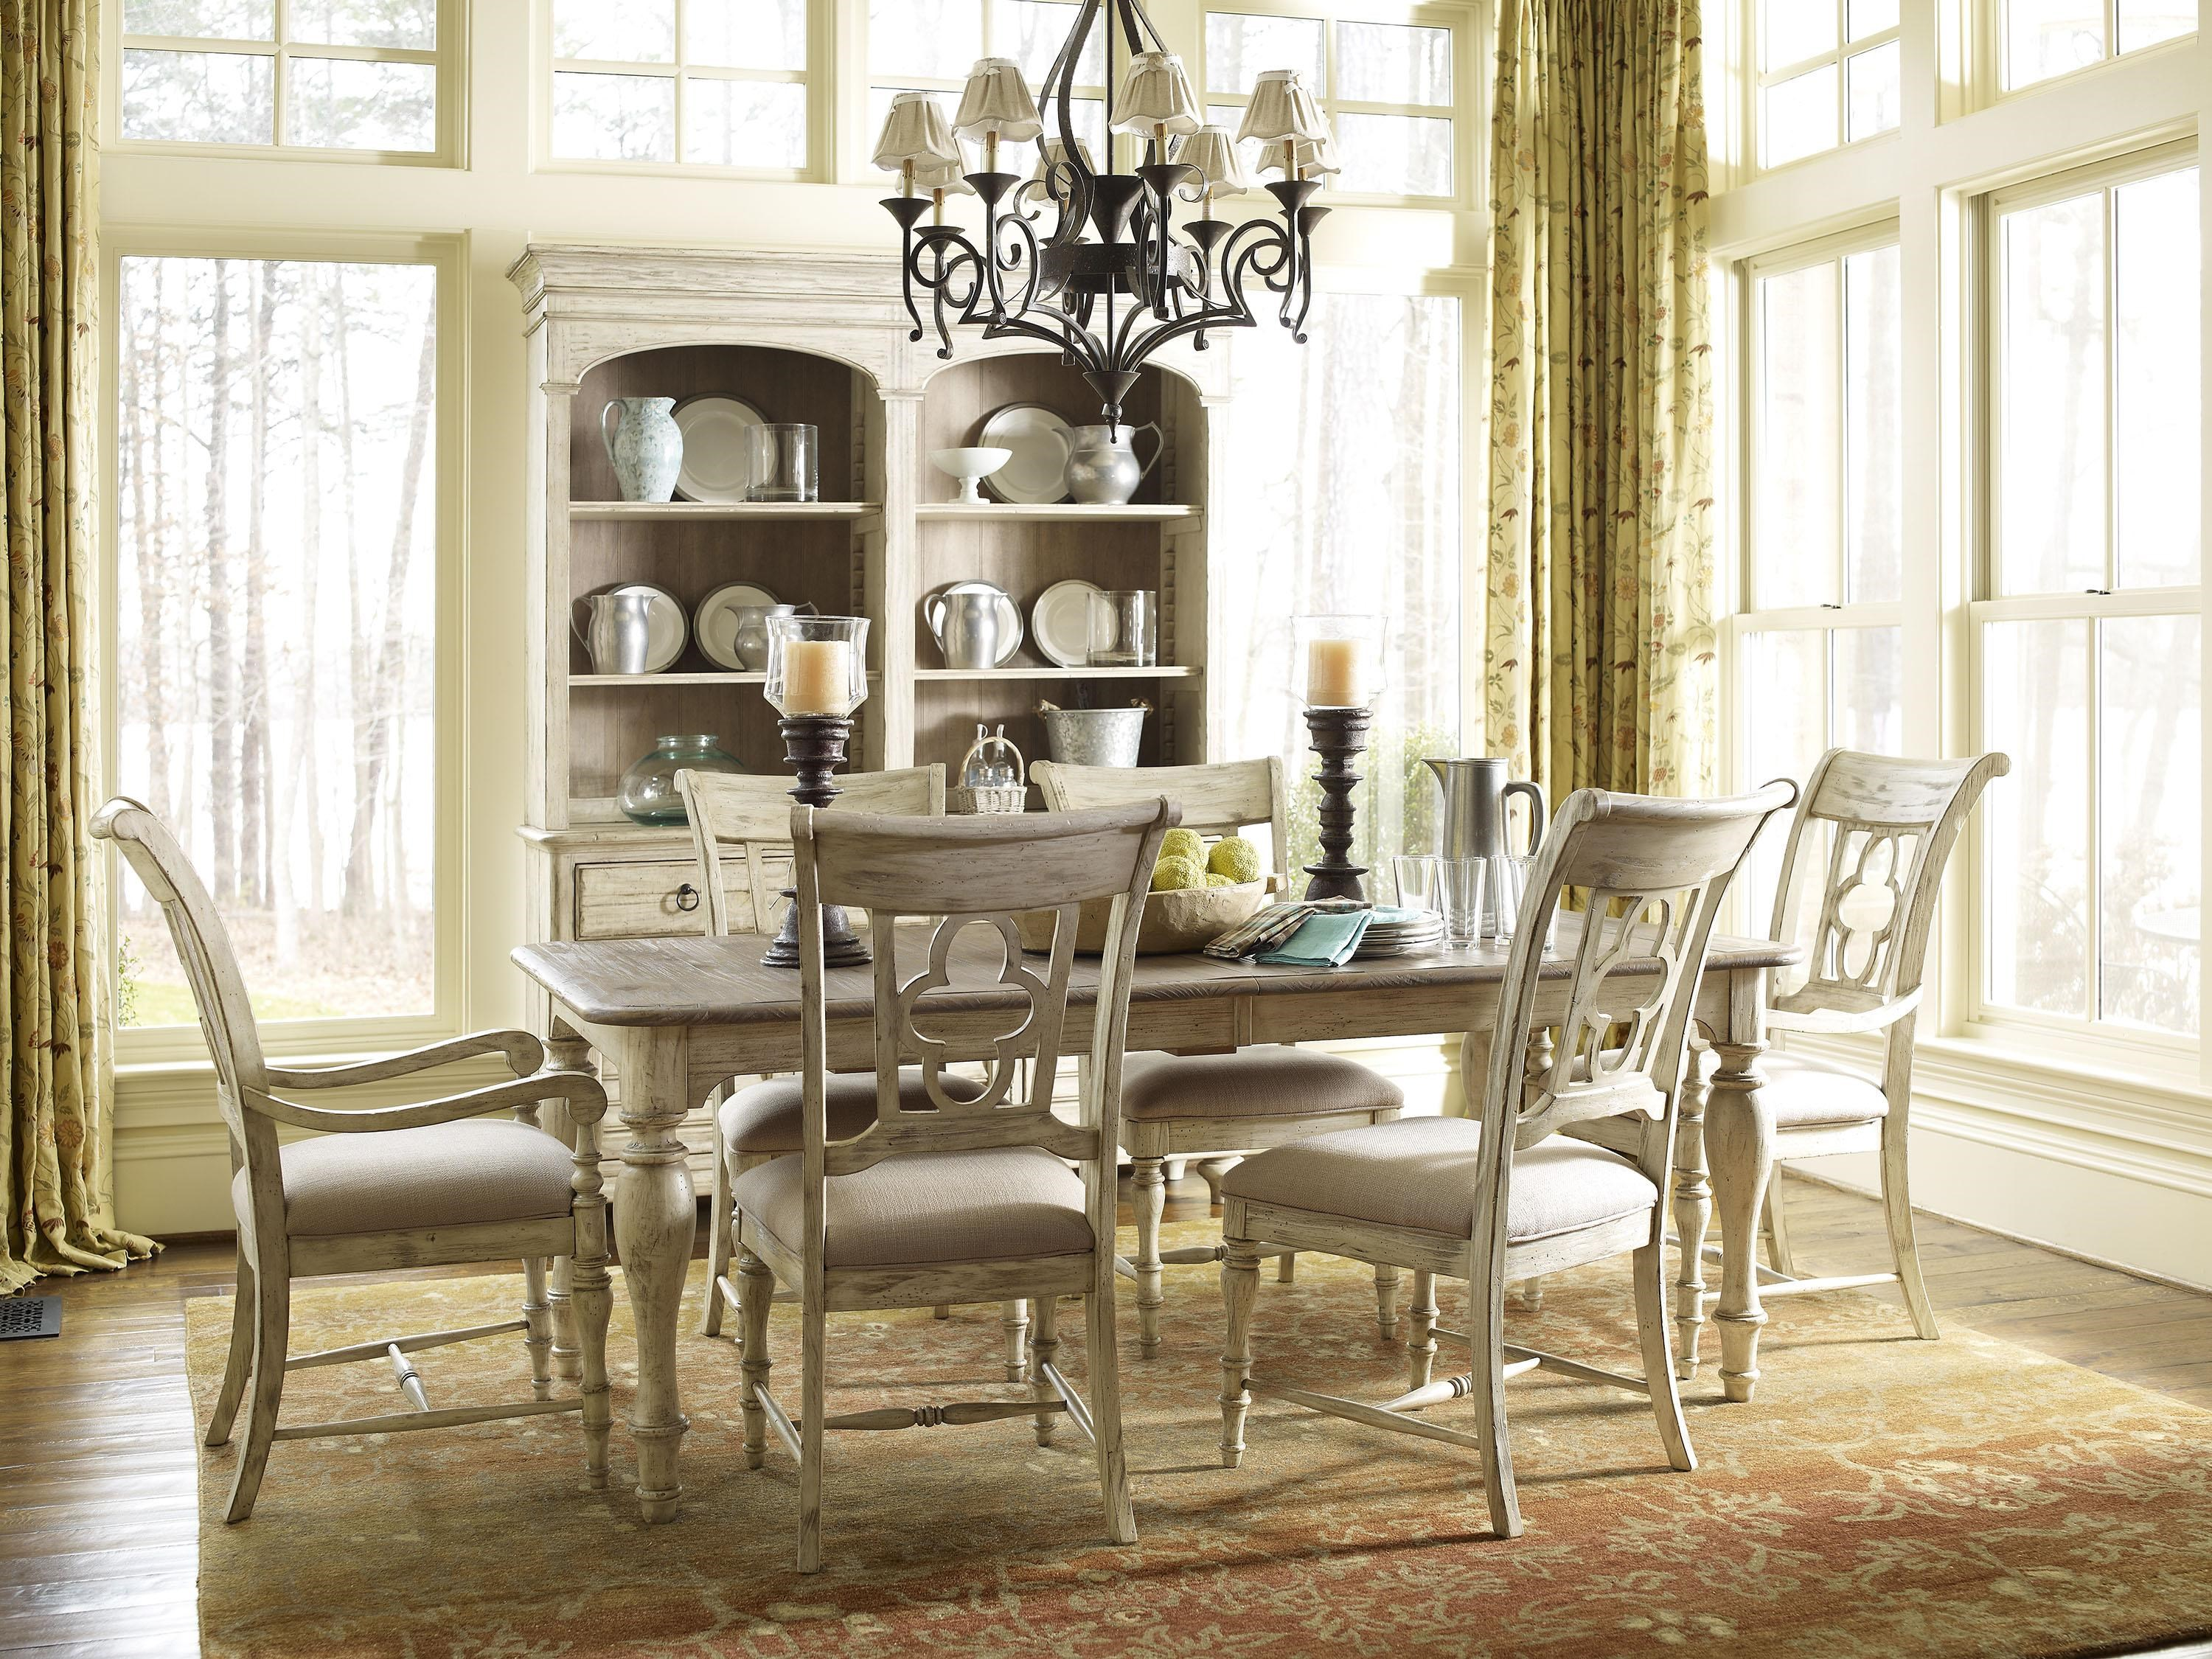 Exceptional Kincaid Furniture Weatherford 7 Piece Dining Set With Canterbury Table And  Quatrefoil Back Chairs   Becker Furniture World   Dining 7 (or More) Piece  Sets